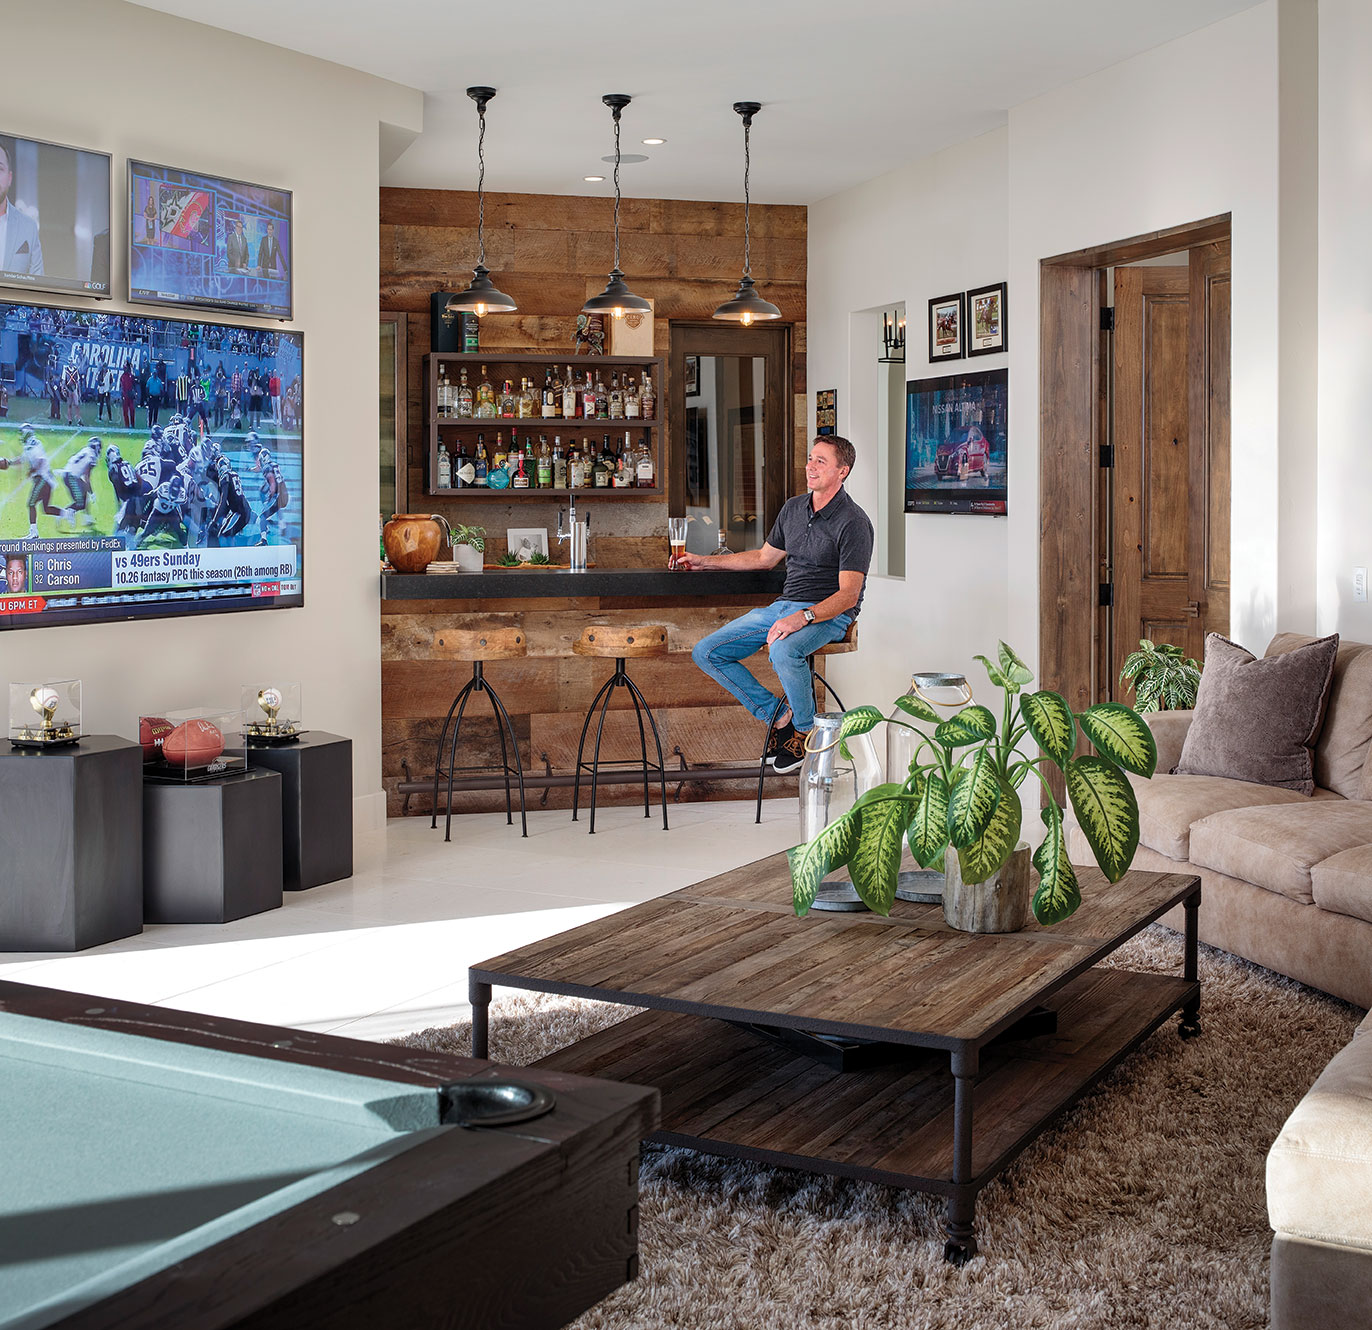 Italian home design San Diego TV room